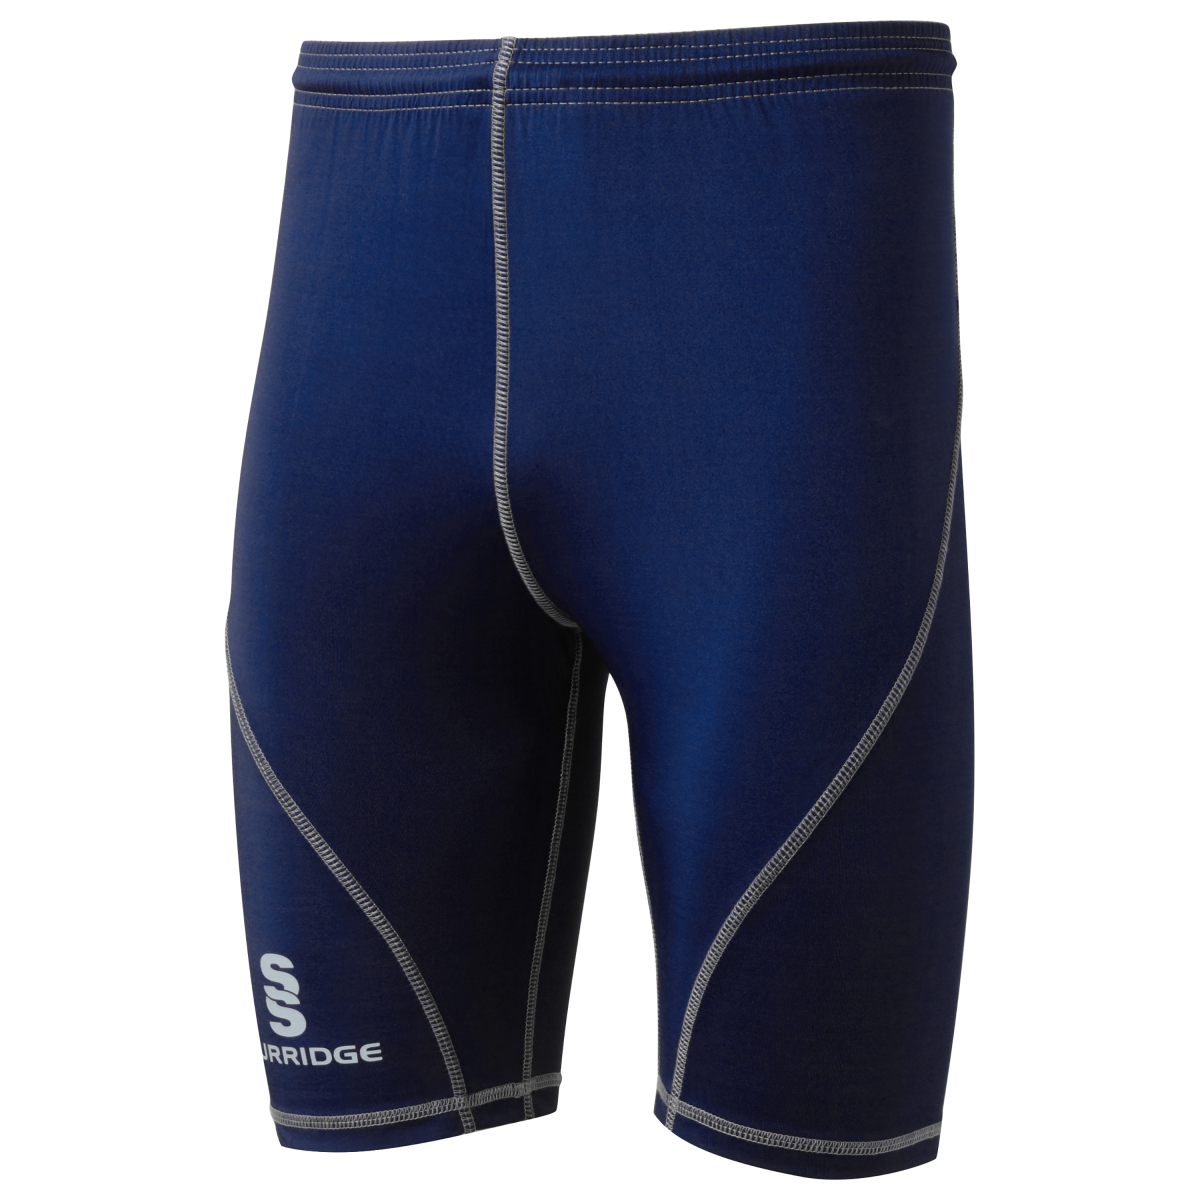 Surridge Premier Thermal Shorts